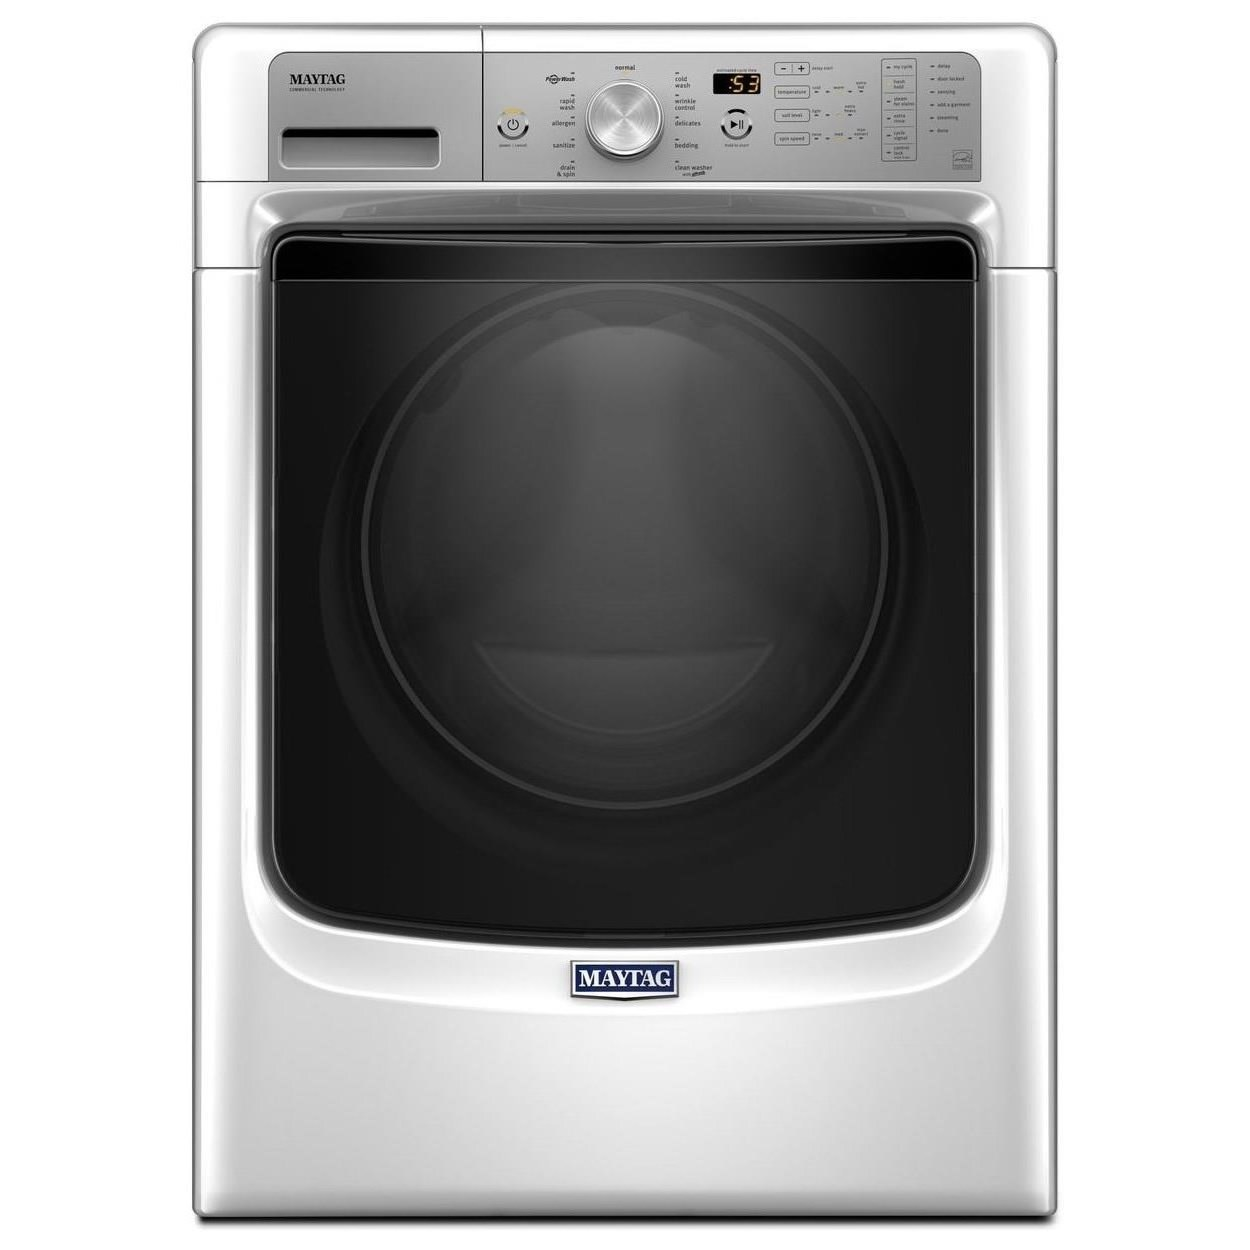 Maytag Front Load Washers 5500 Series 4.5 Cu. Ft. Front Load Washer - Item Number: MHW5500FW